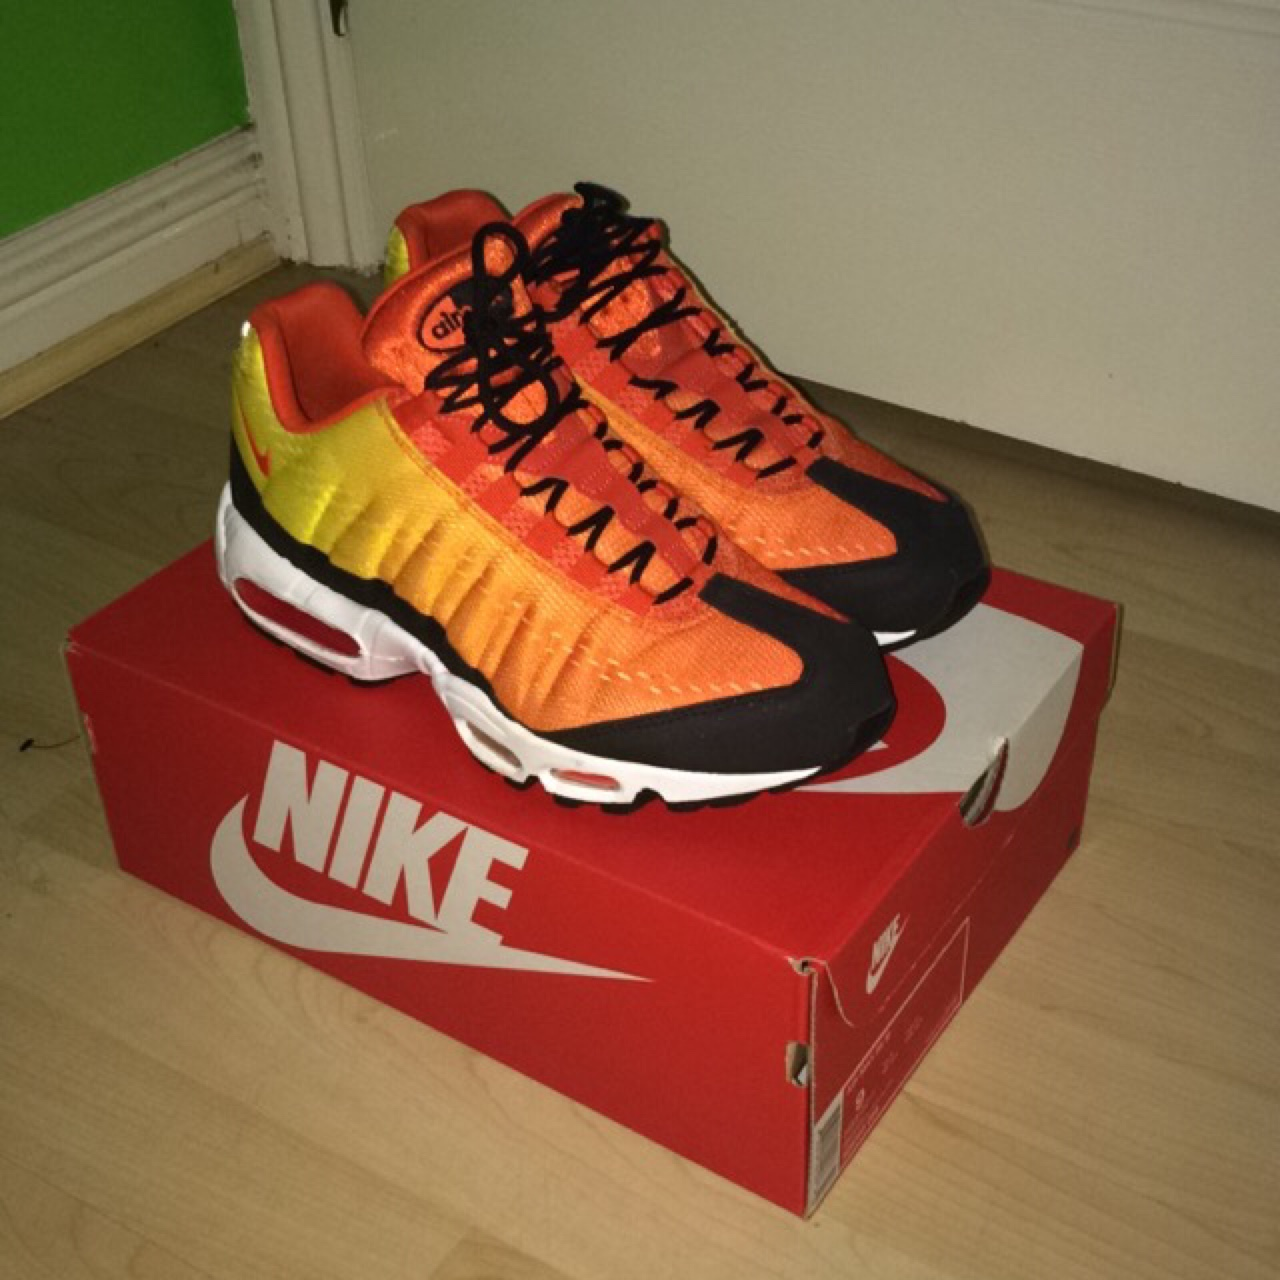 nike air max 95 heatwave. Deadstock. Very rare shoes